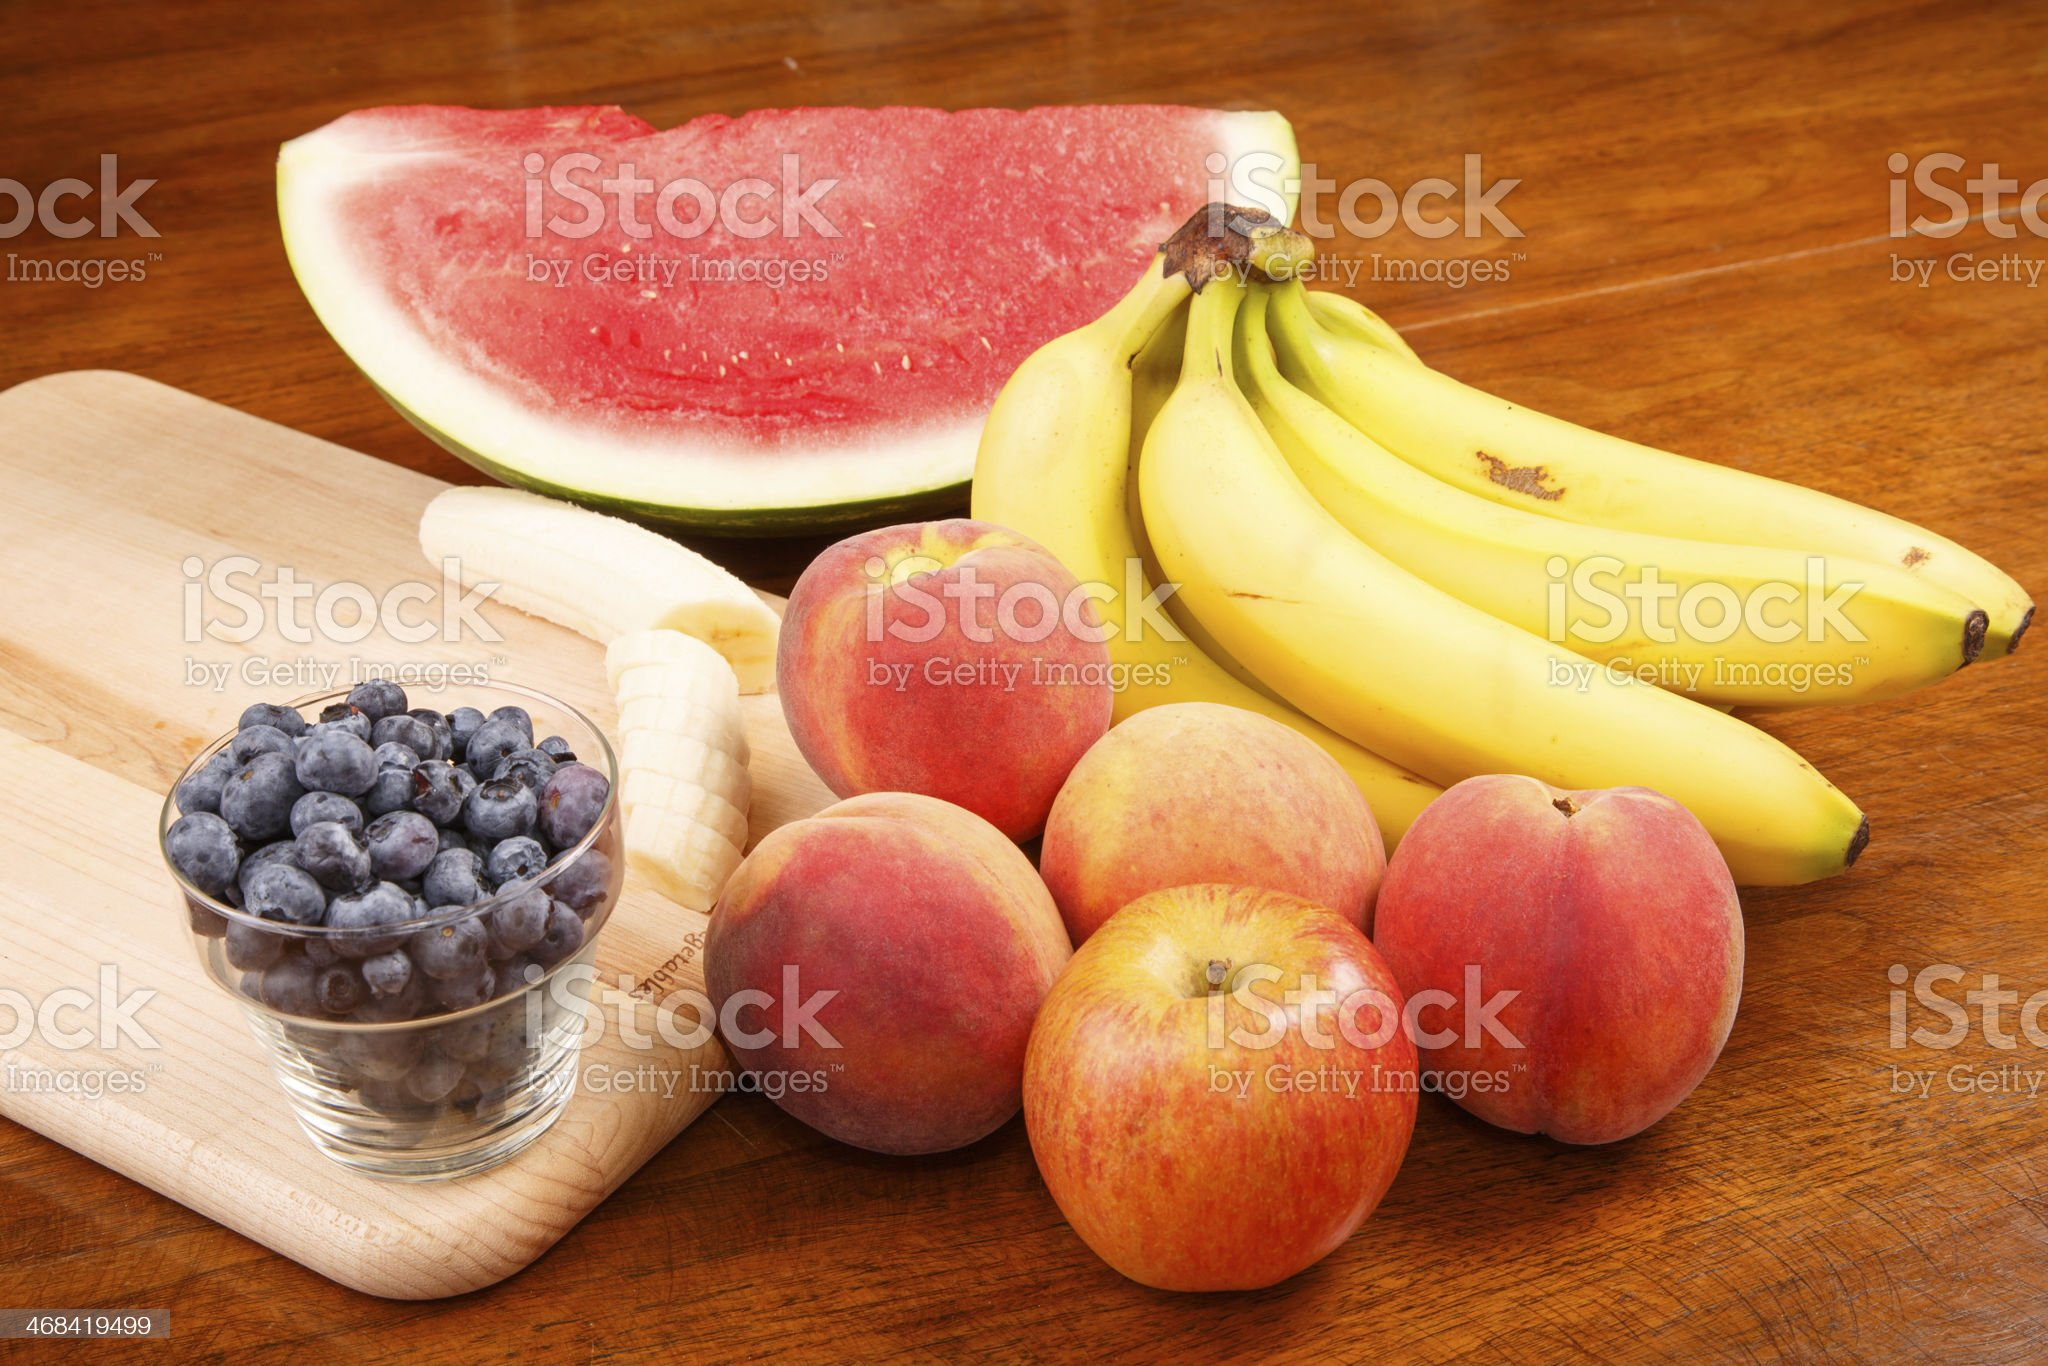 Whole and Cut Fruit on Table royalty-free stock photo